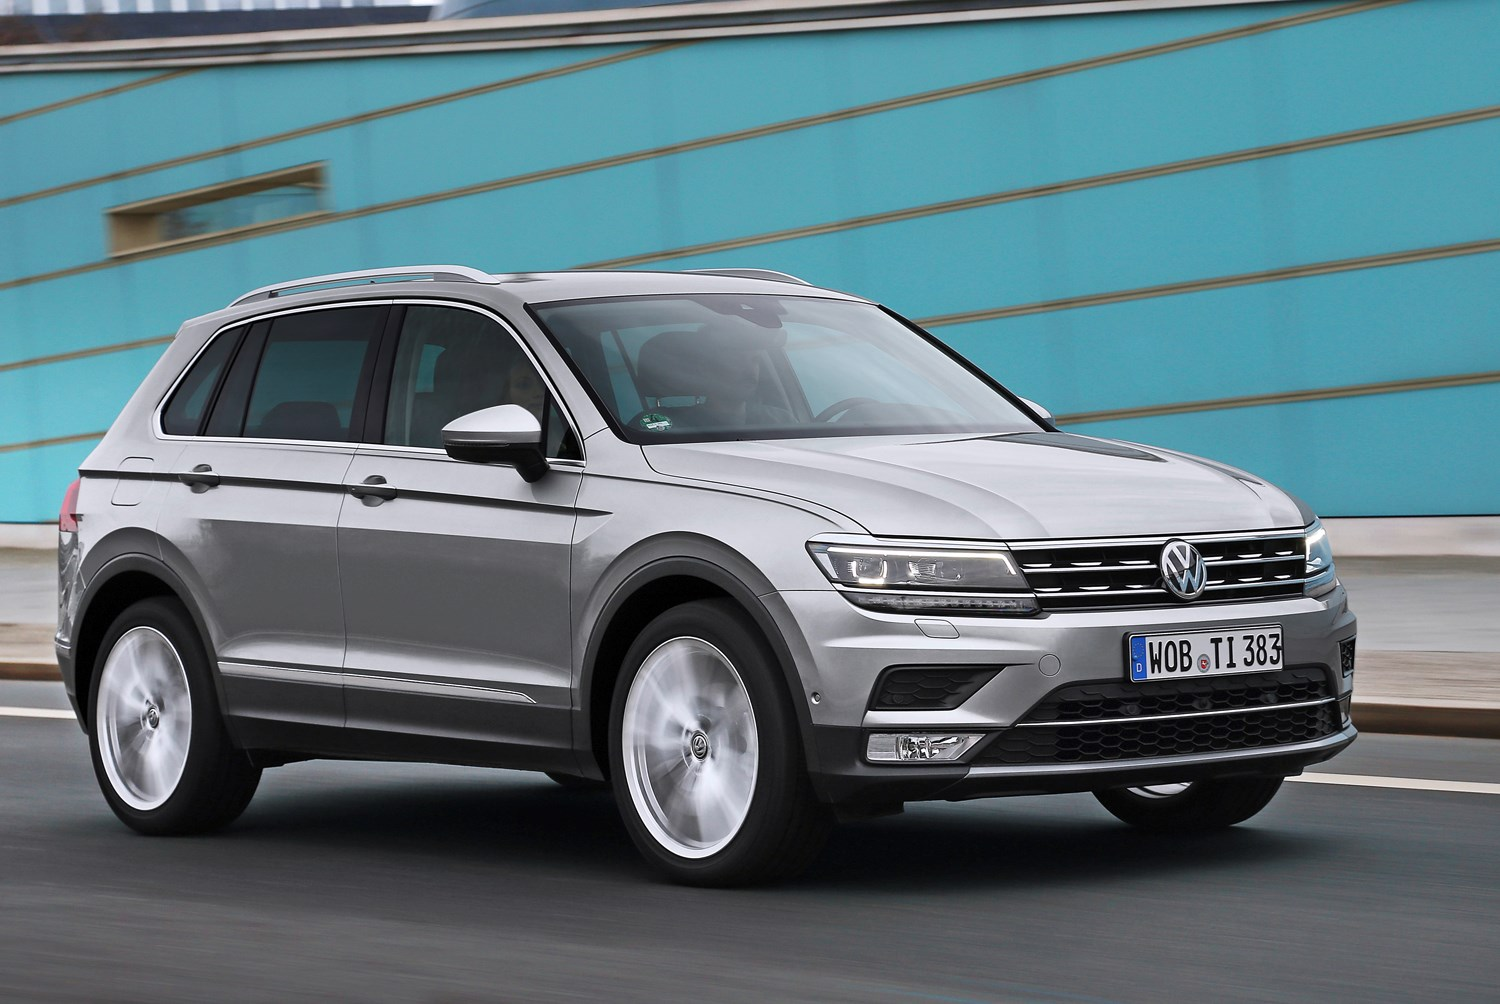 volkswagen tiguan estate 2016 photos parkers. Black Bedroom Furniture Sets. Home Design Ideas